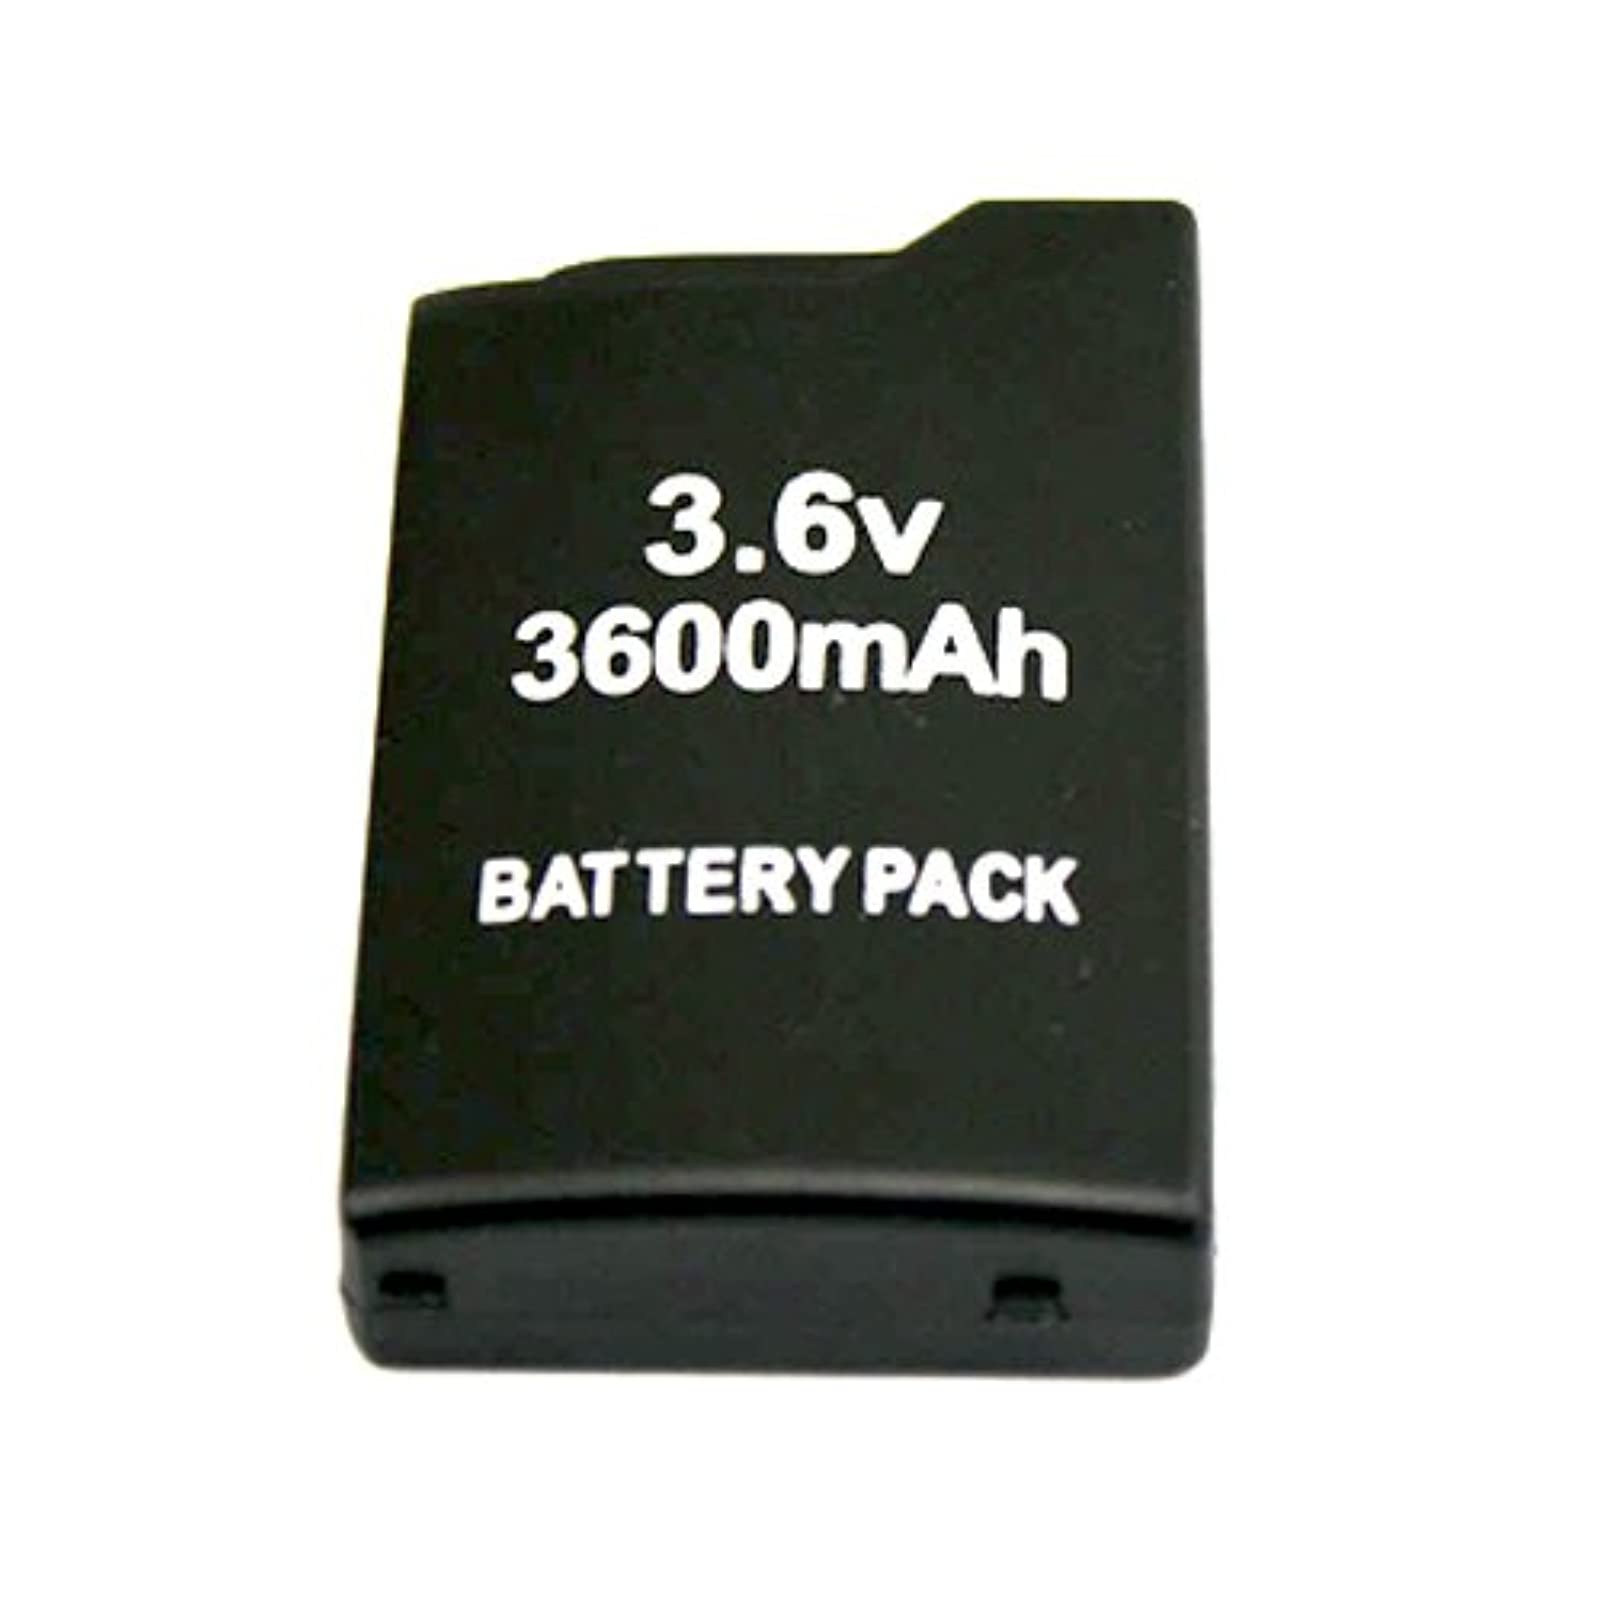 3600MAH Rechargeable Battery Pack And Back Cover Case For Sony PSP 1000 1001